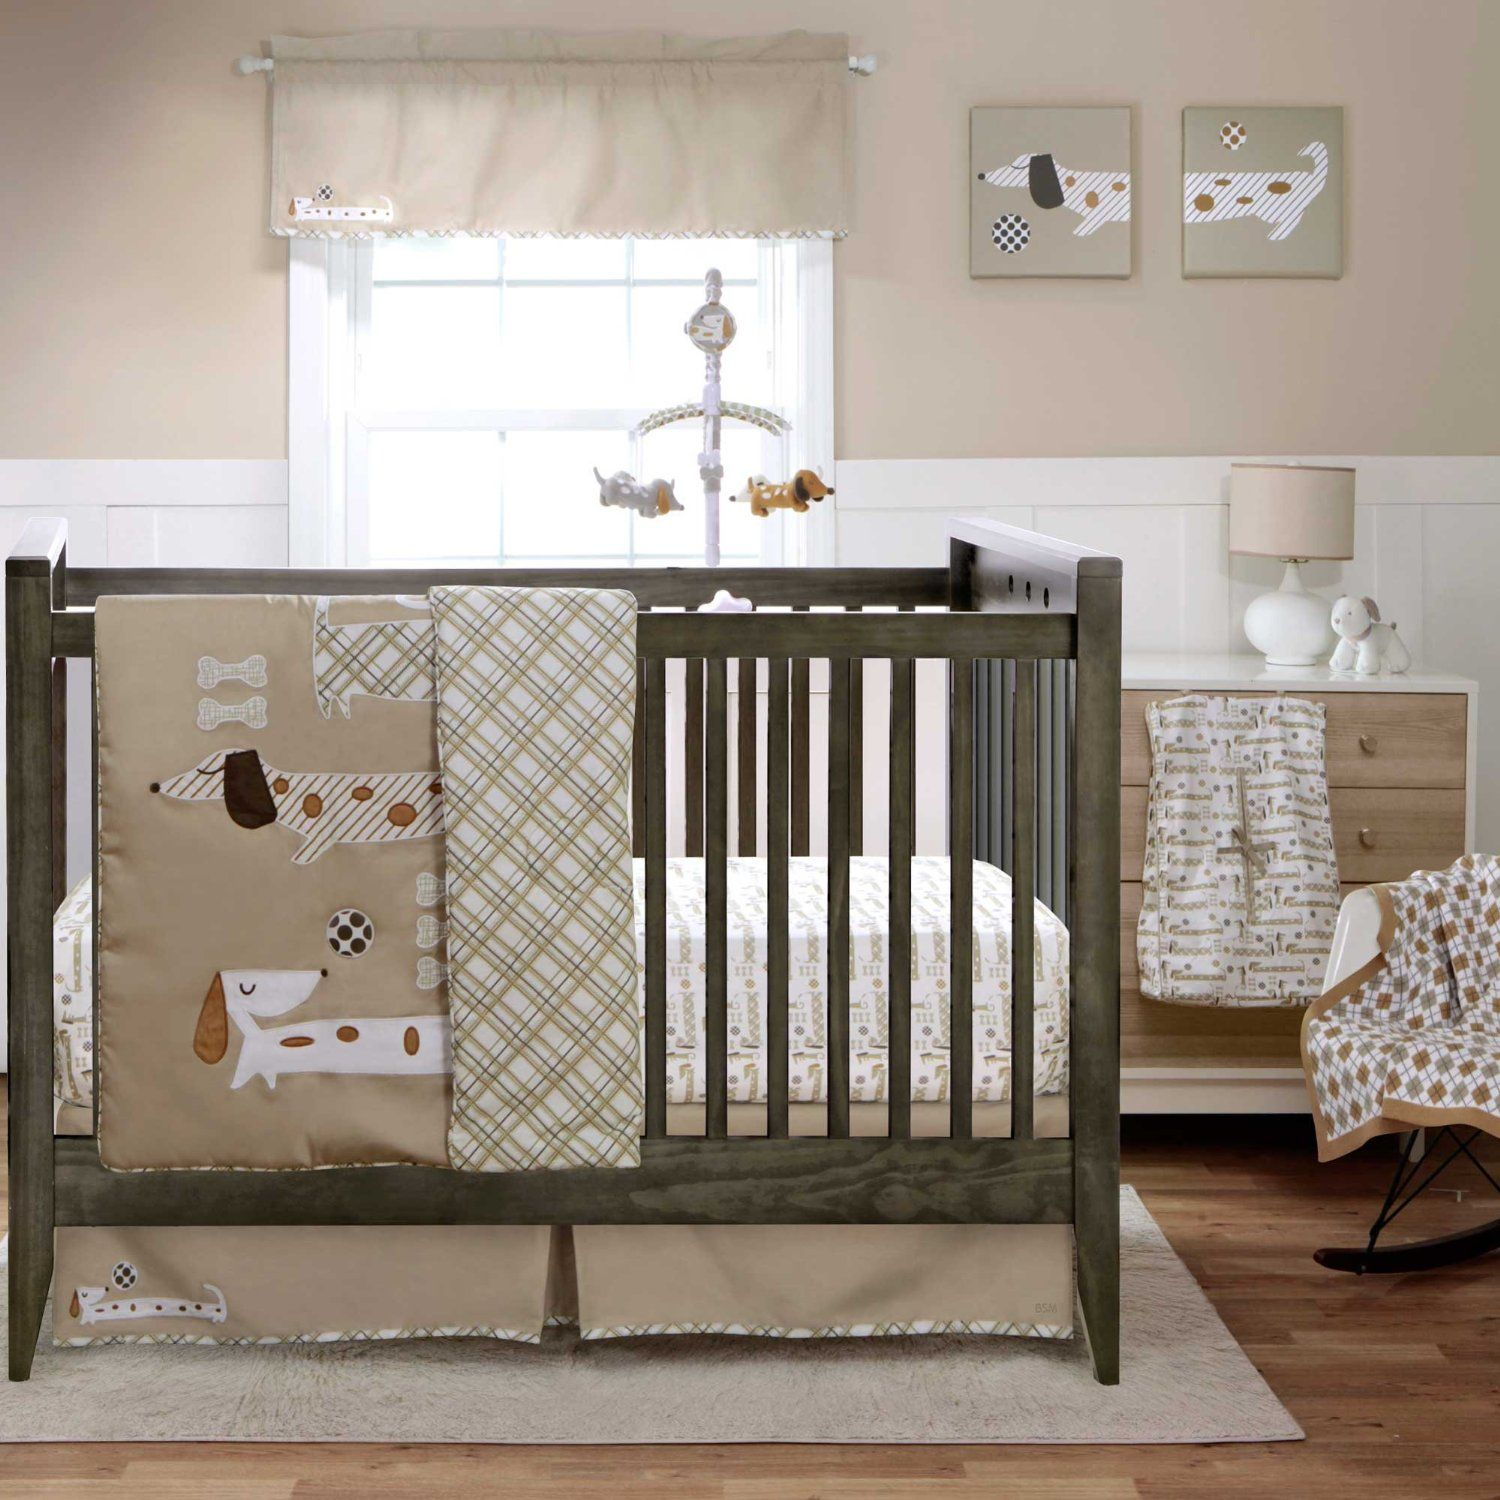 Migi Puppy Play Baby Bedding And Decor For Baby Baby